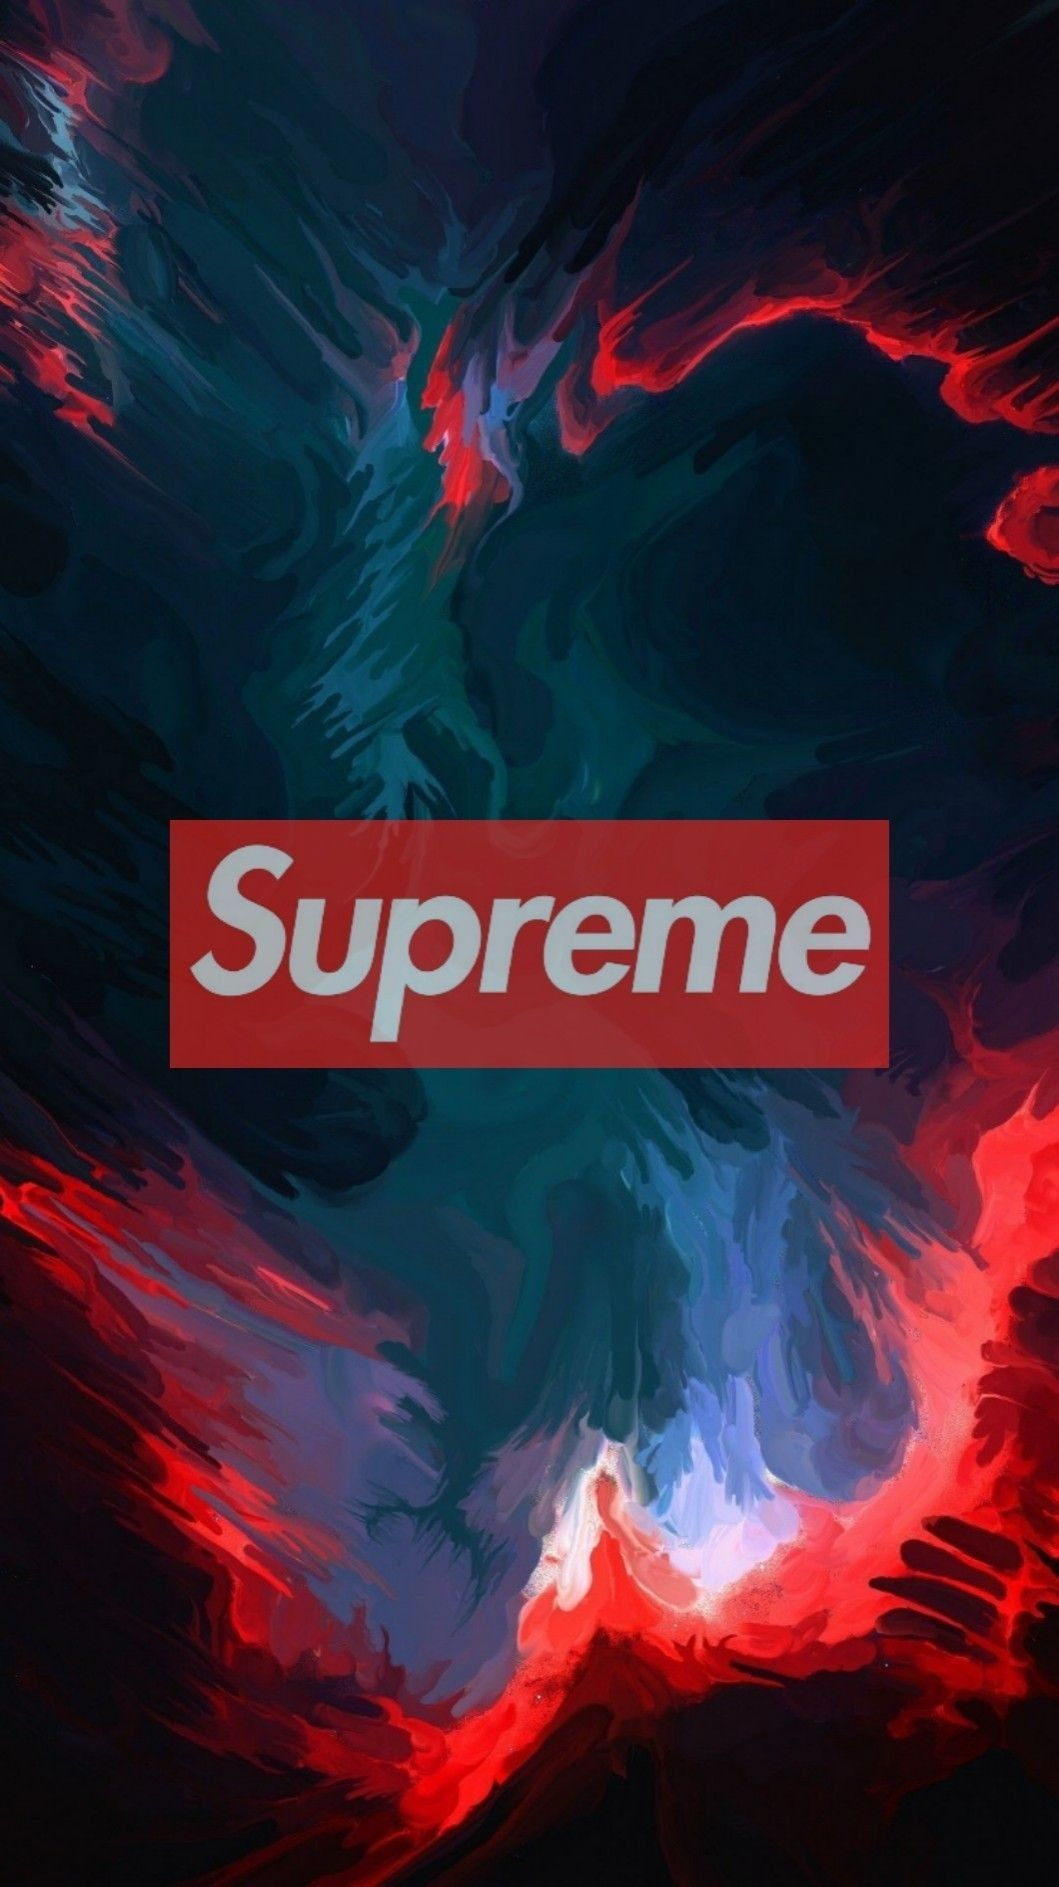 Luxury The North Face Wallpaper For Iphone Supreme Wallpaper Supreme Iphone Wallpaper Hypebeast Iphone Wallpaper